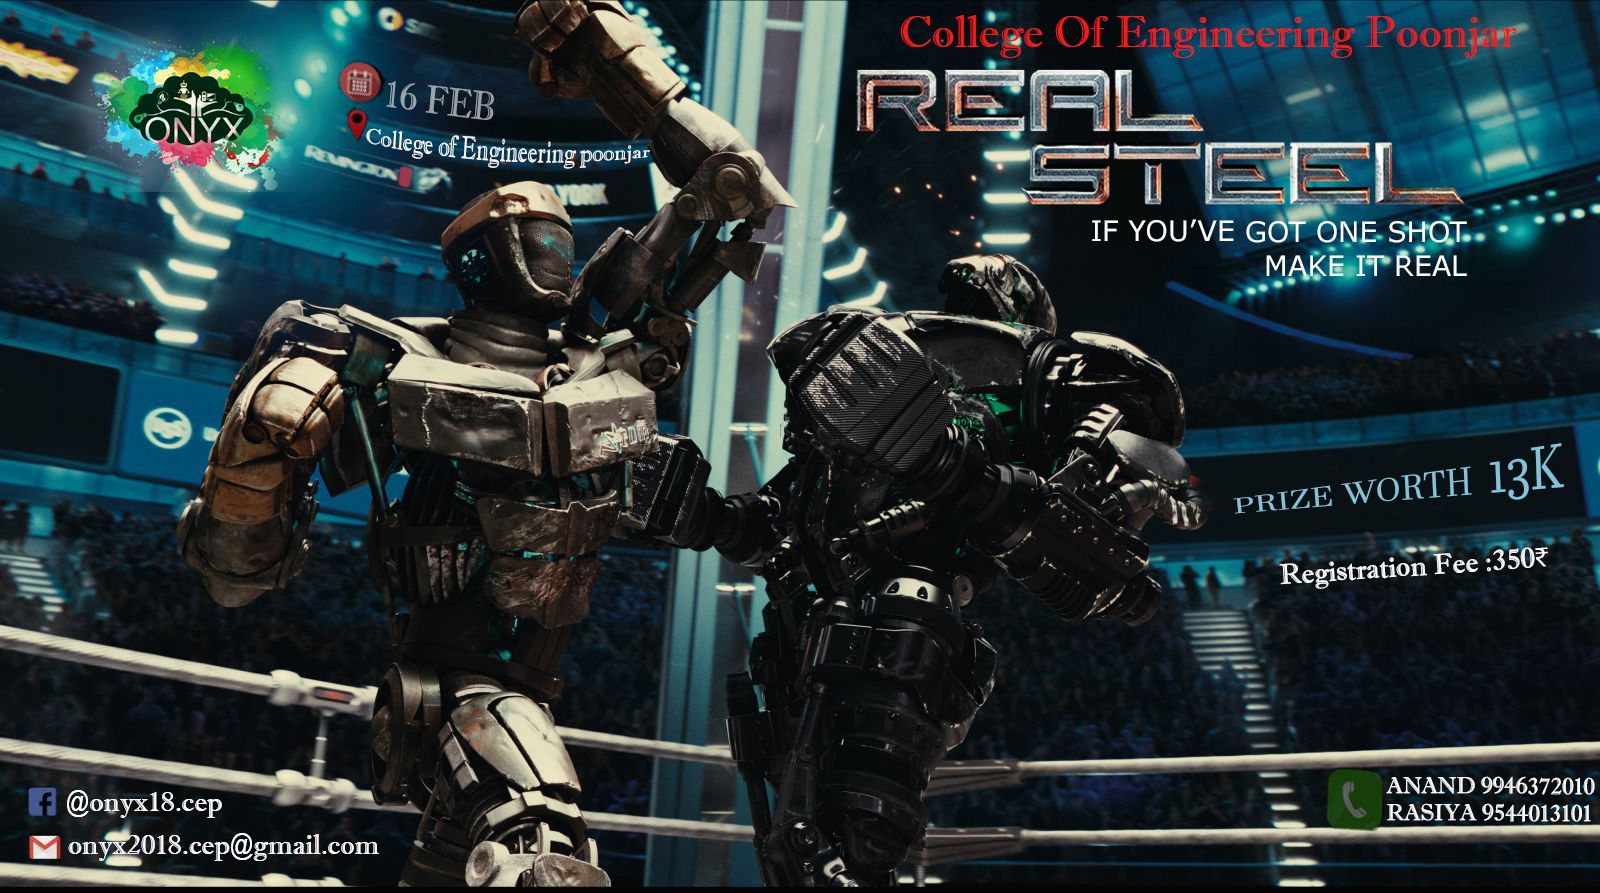 real-steel-robo-war-1600x893